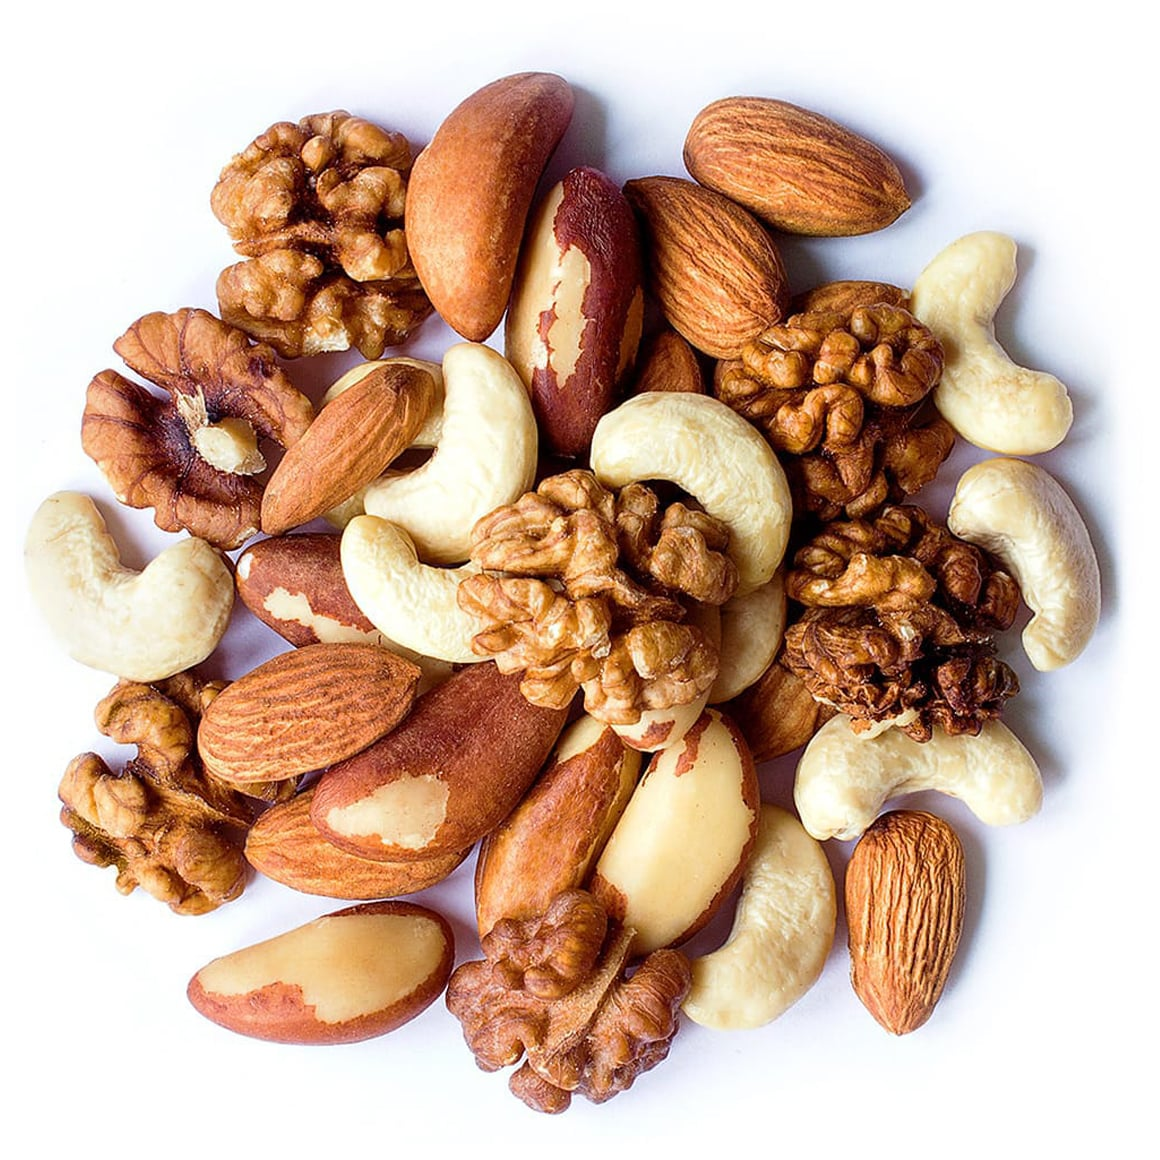 6 Dishes Health Nuts Order At Olive Garden: Organic Mixed Raw Nuts Buy In Bulk From Food To Live